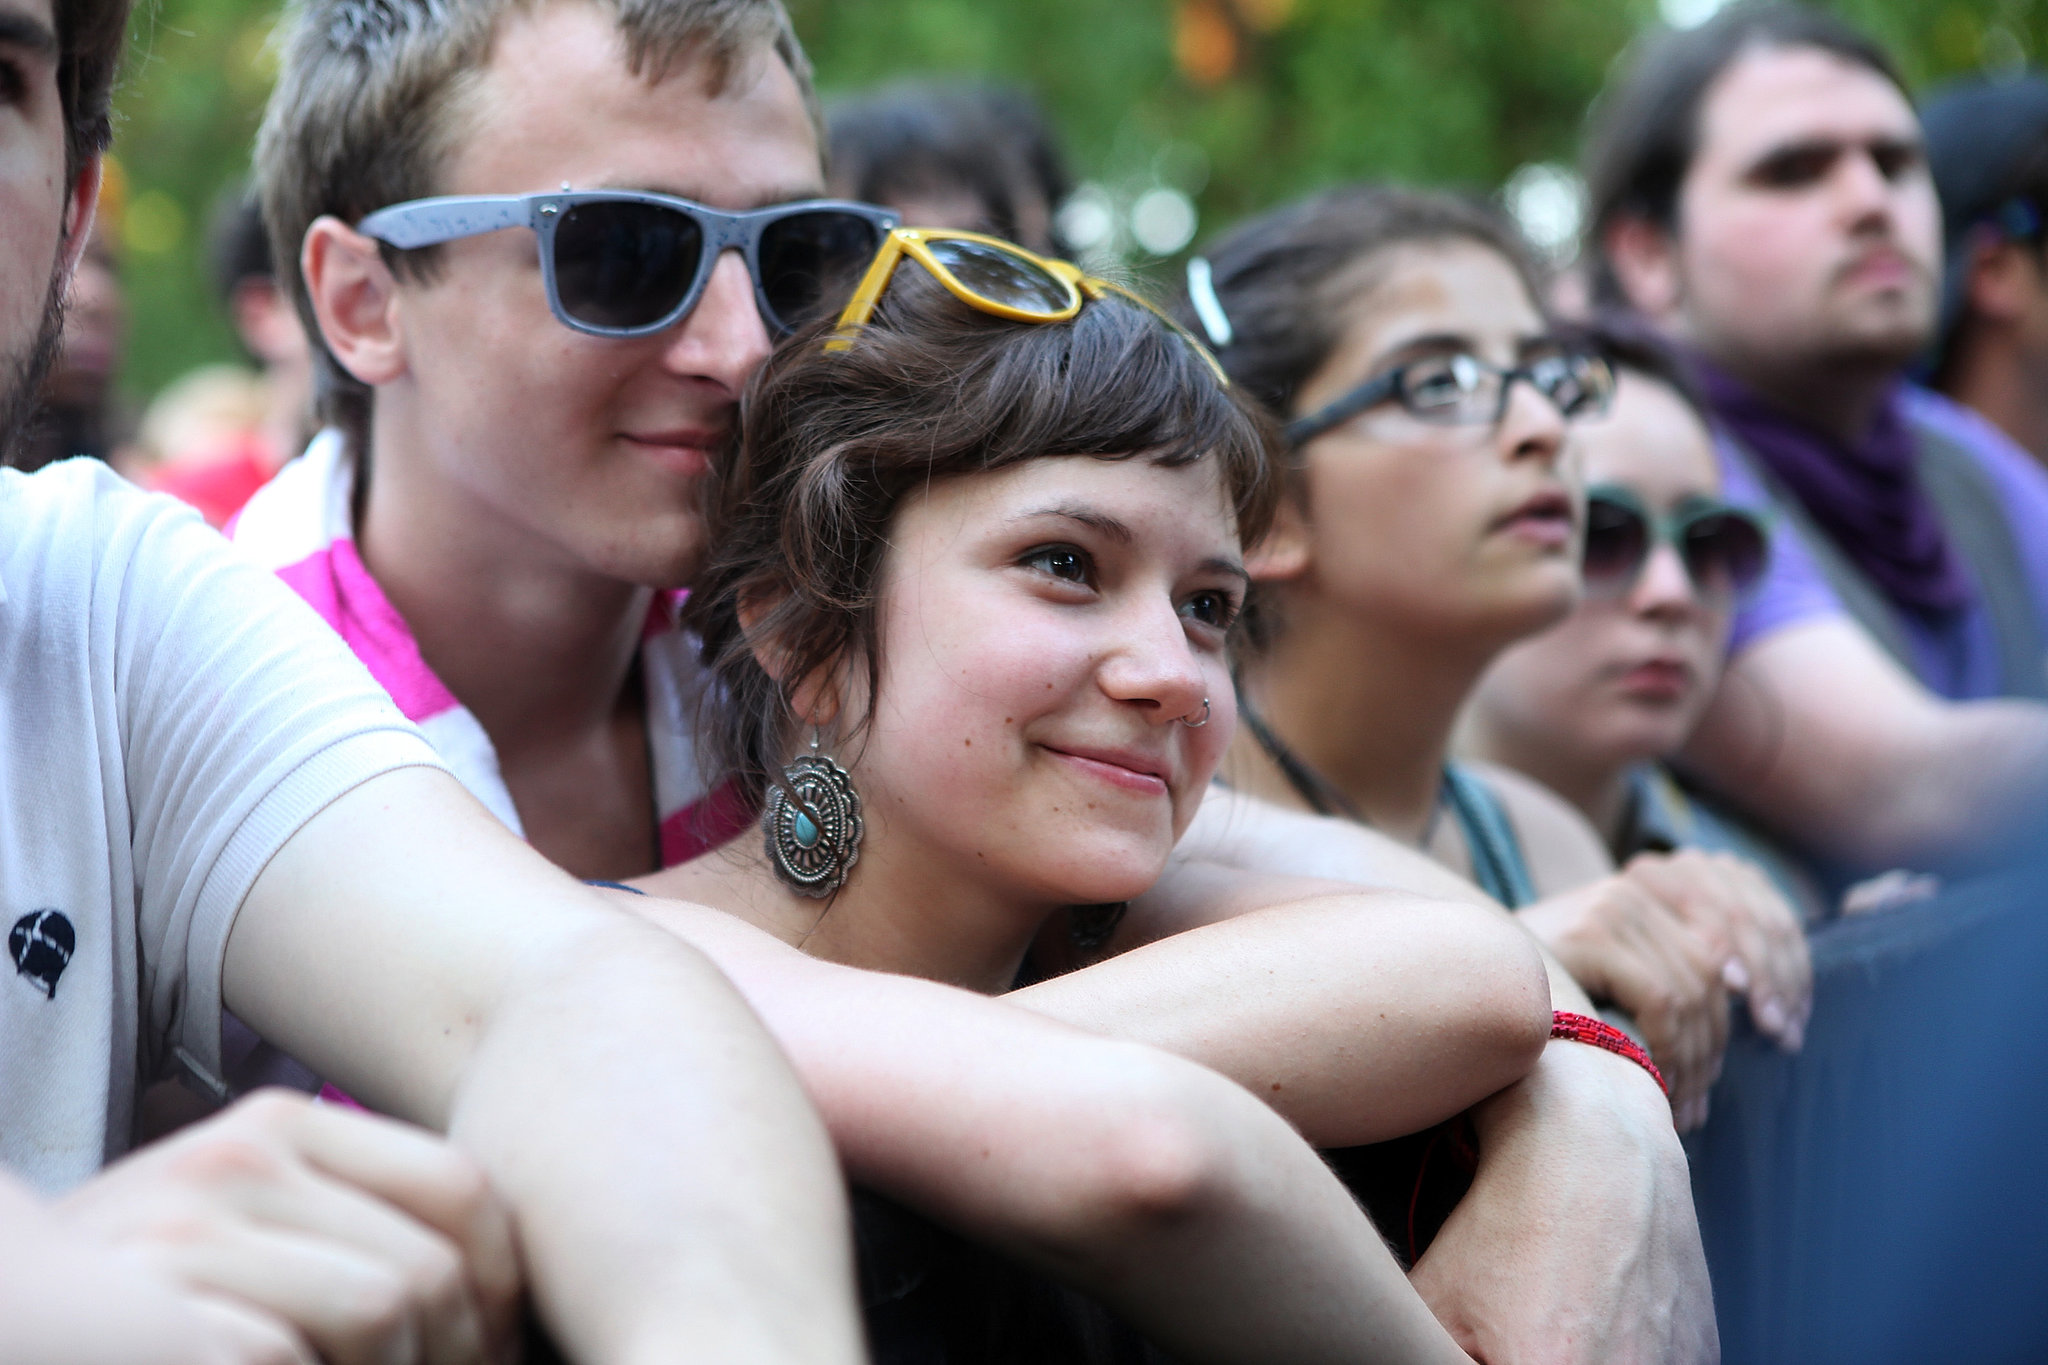 A sweet pair of festivalgoers snuggled up at the Pitchfork Music Festival.